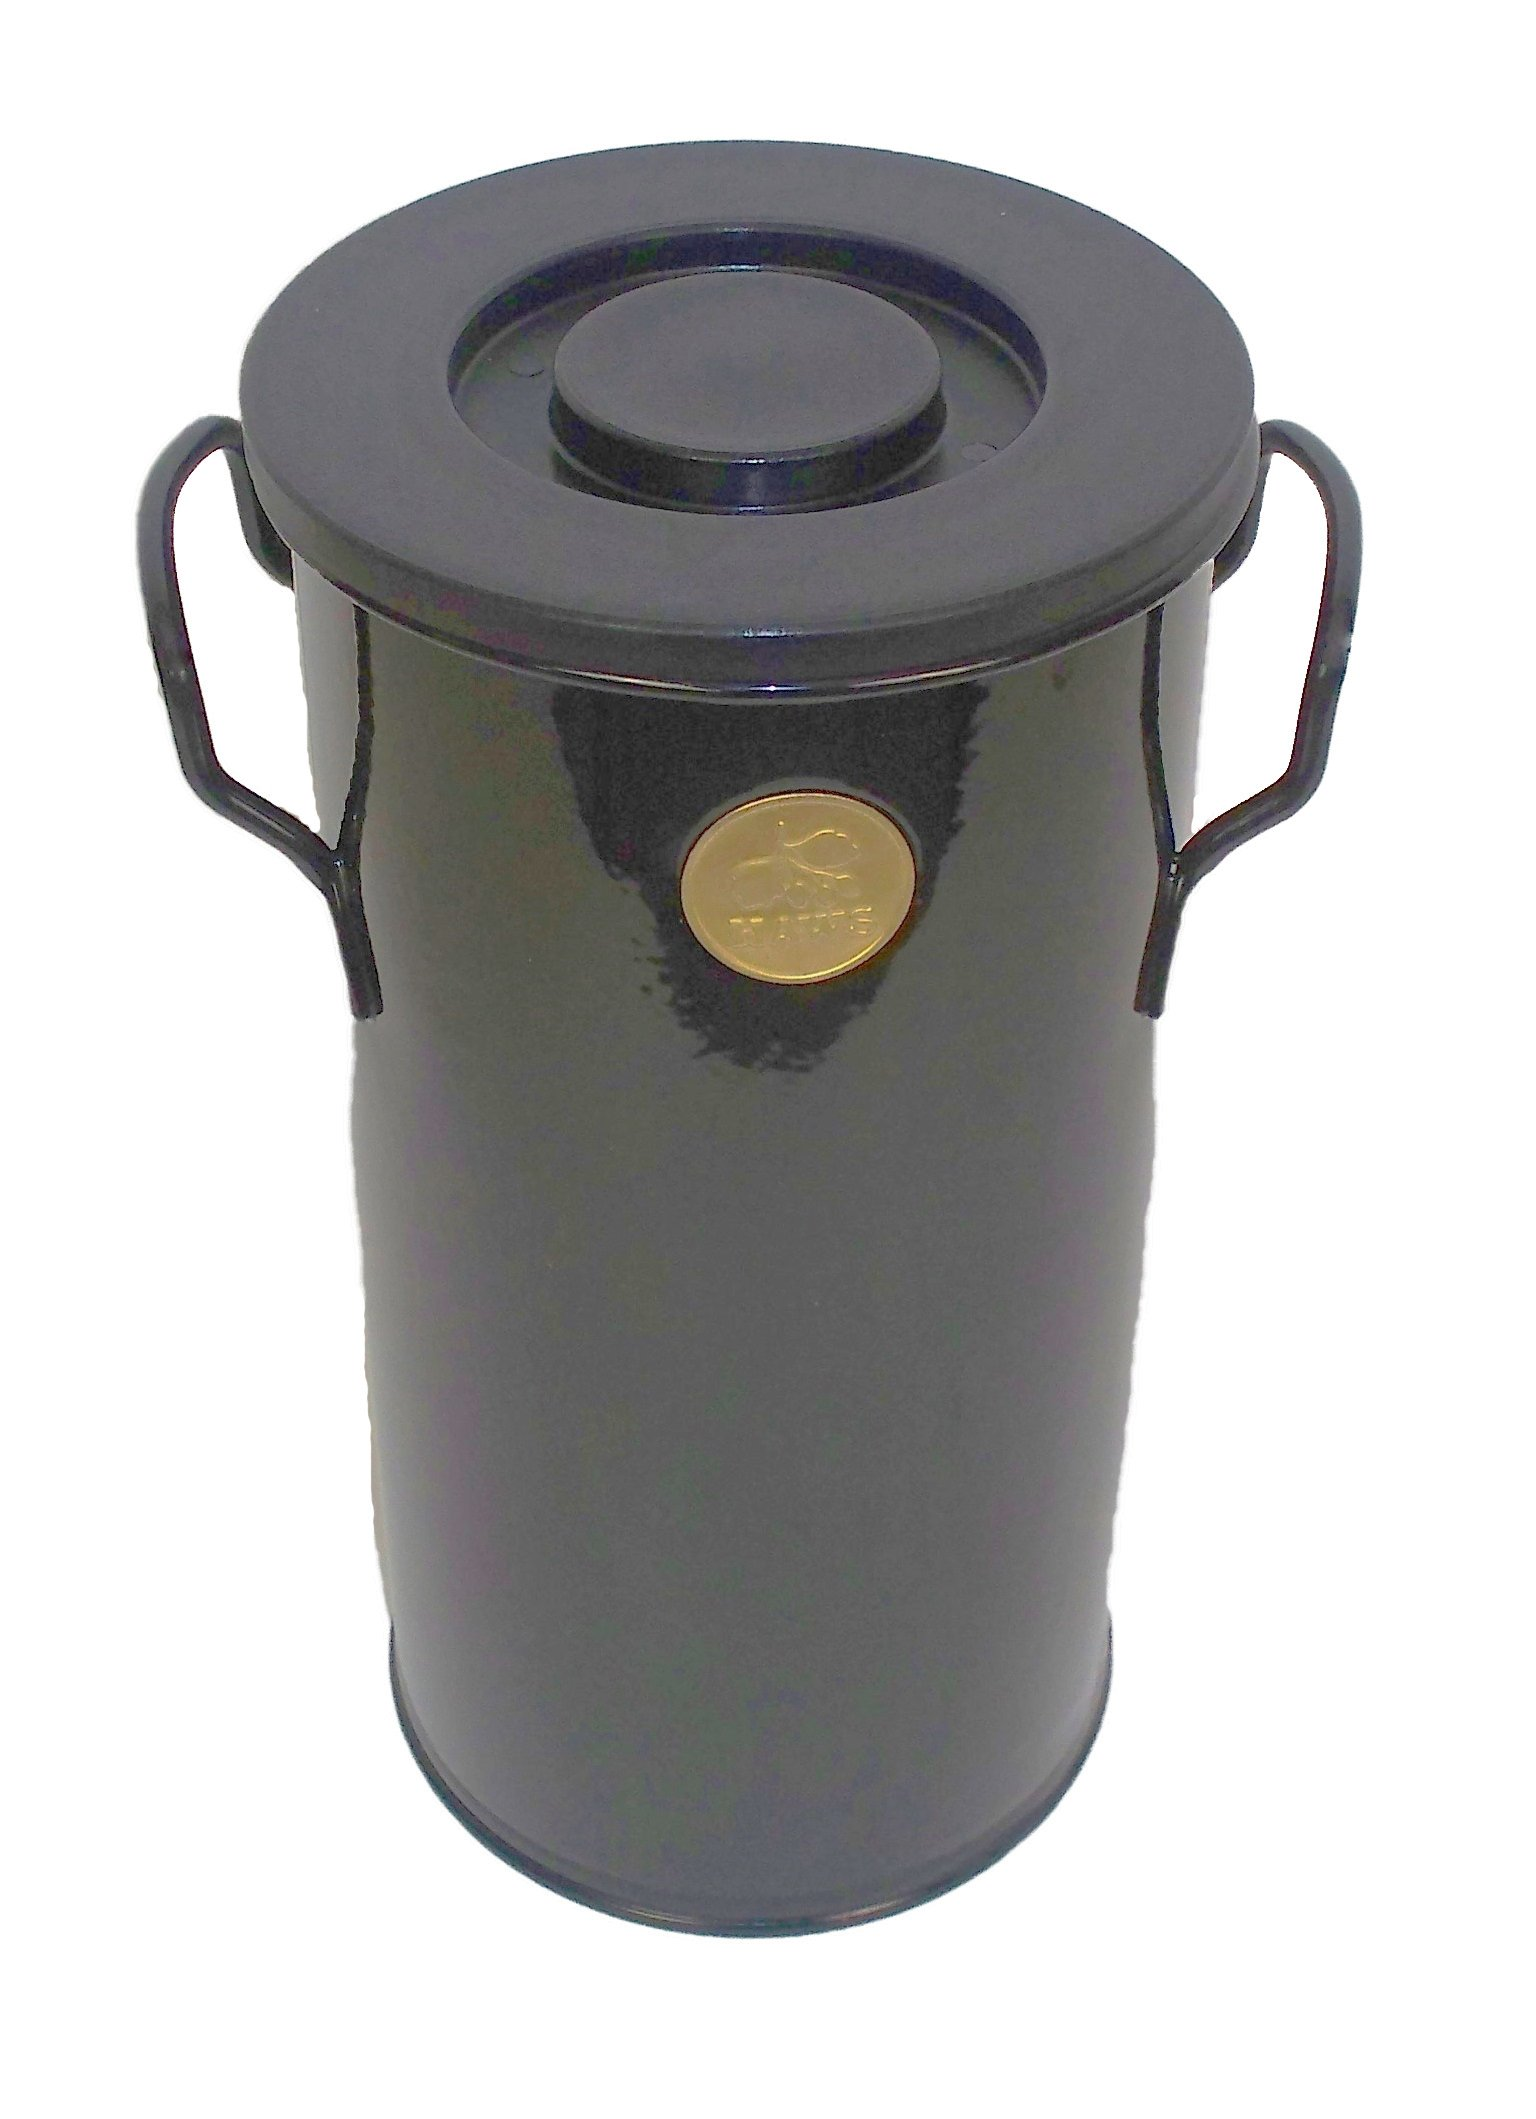 Bosmere Haws 1-Gallon Kitchen Compost Caddy, Black